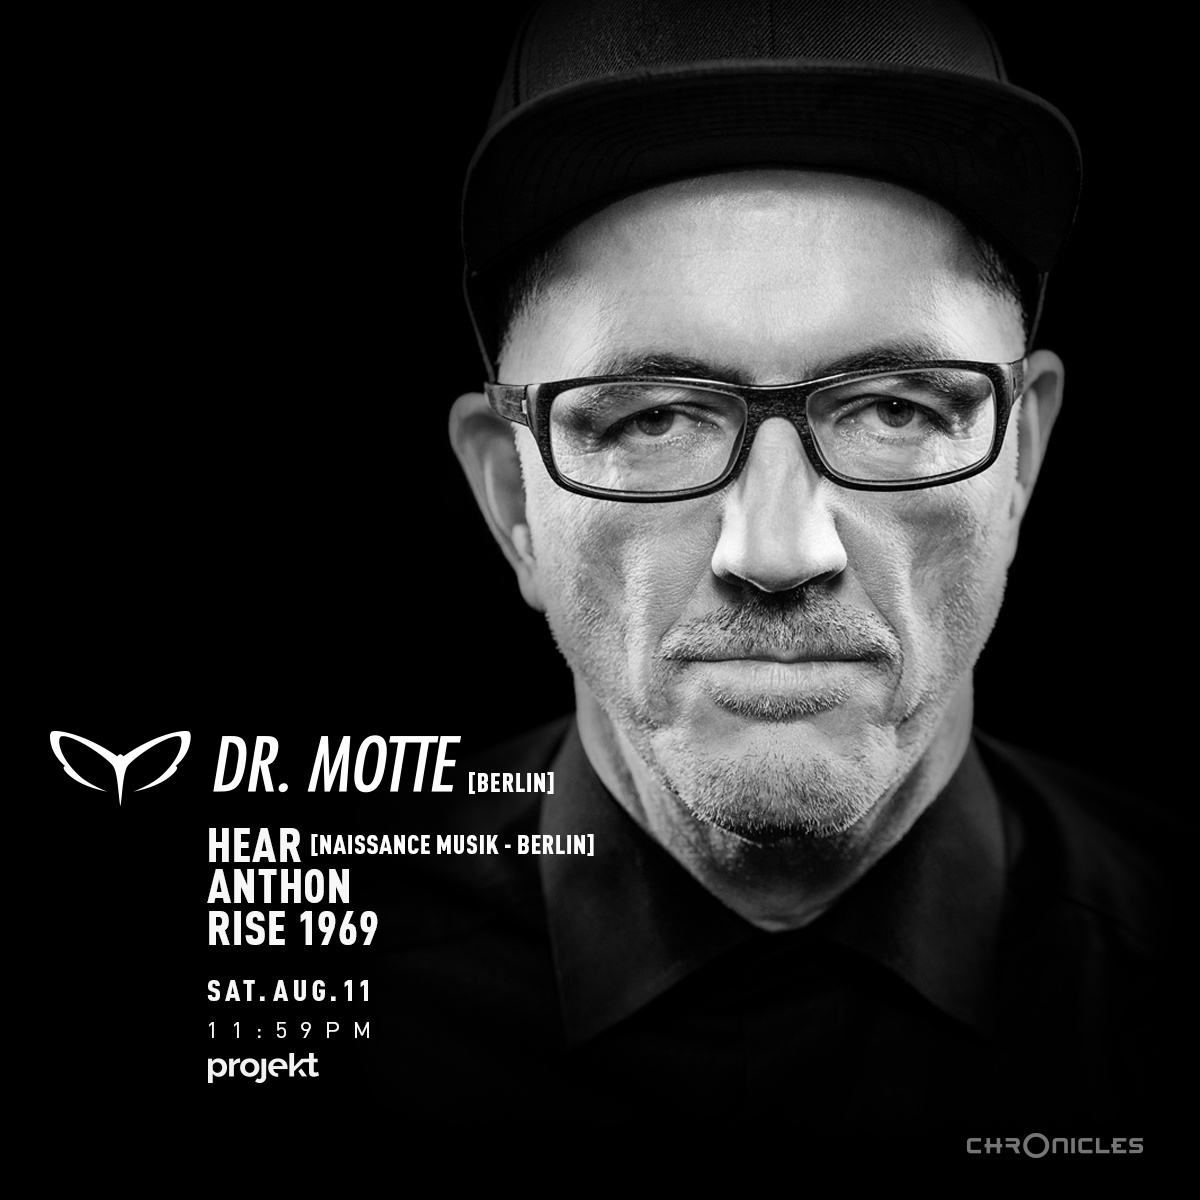 dr. motte techno beirut podcast dj set projekt club